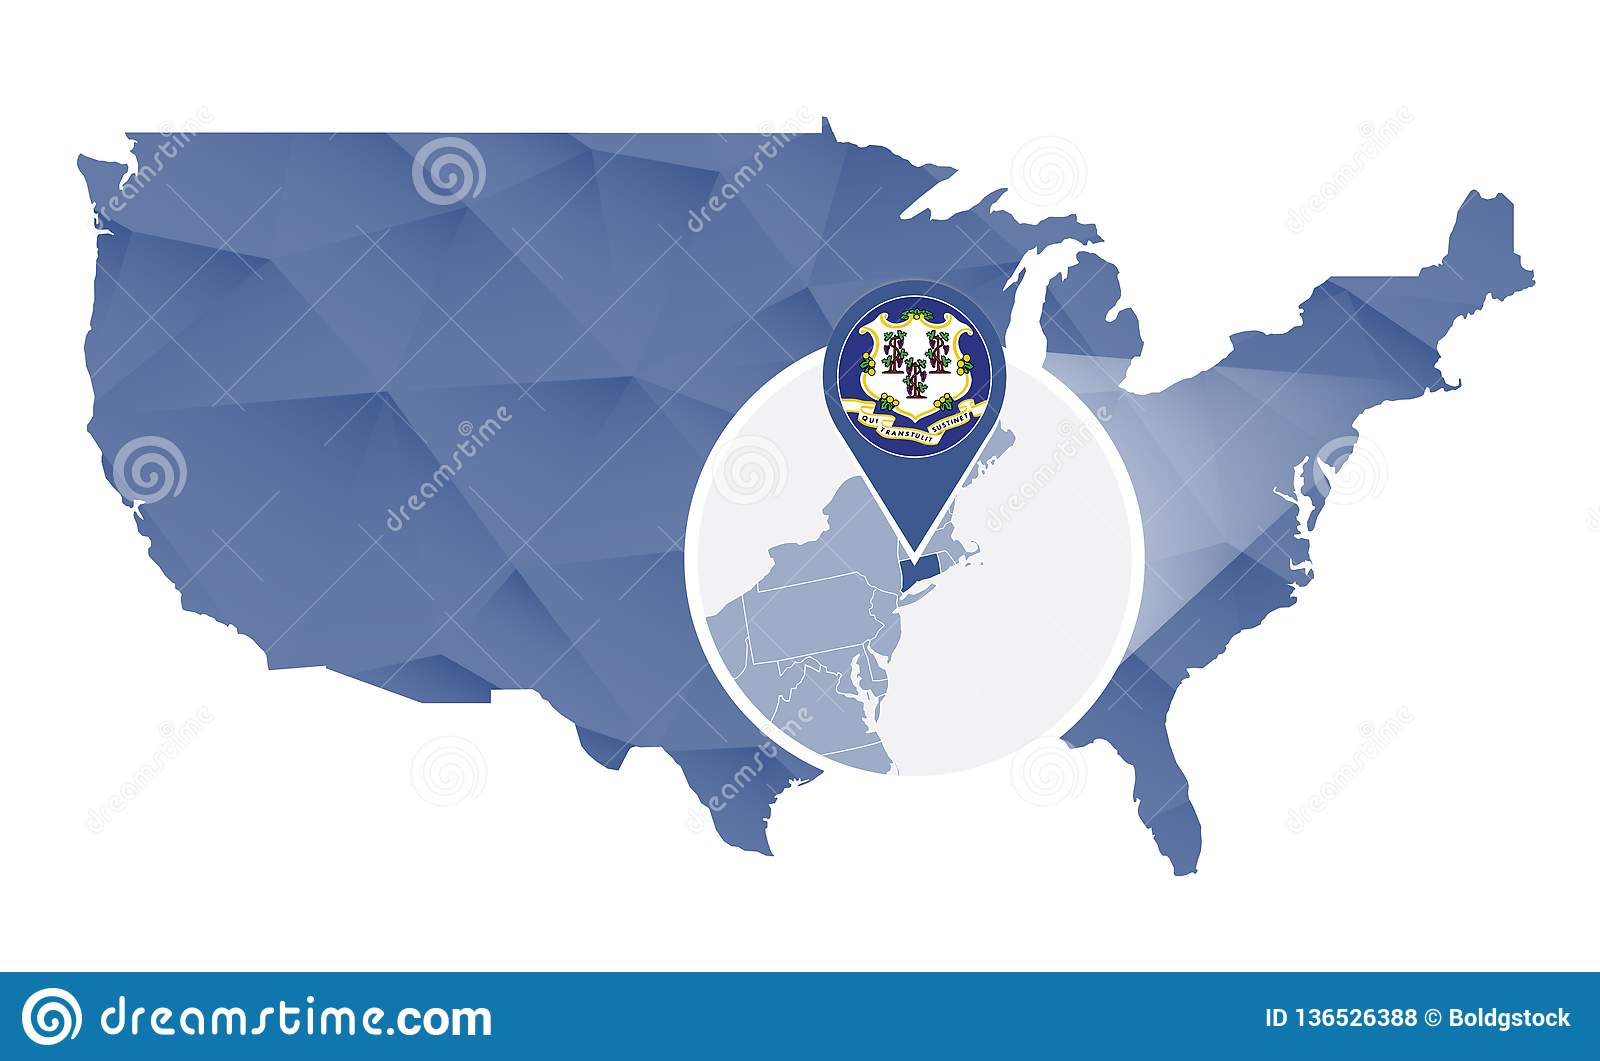 Connecticut State Magnified On United States Map Stock Vector - Connecticut-in-us-map